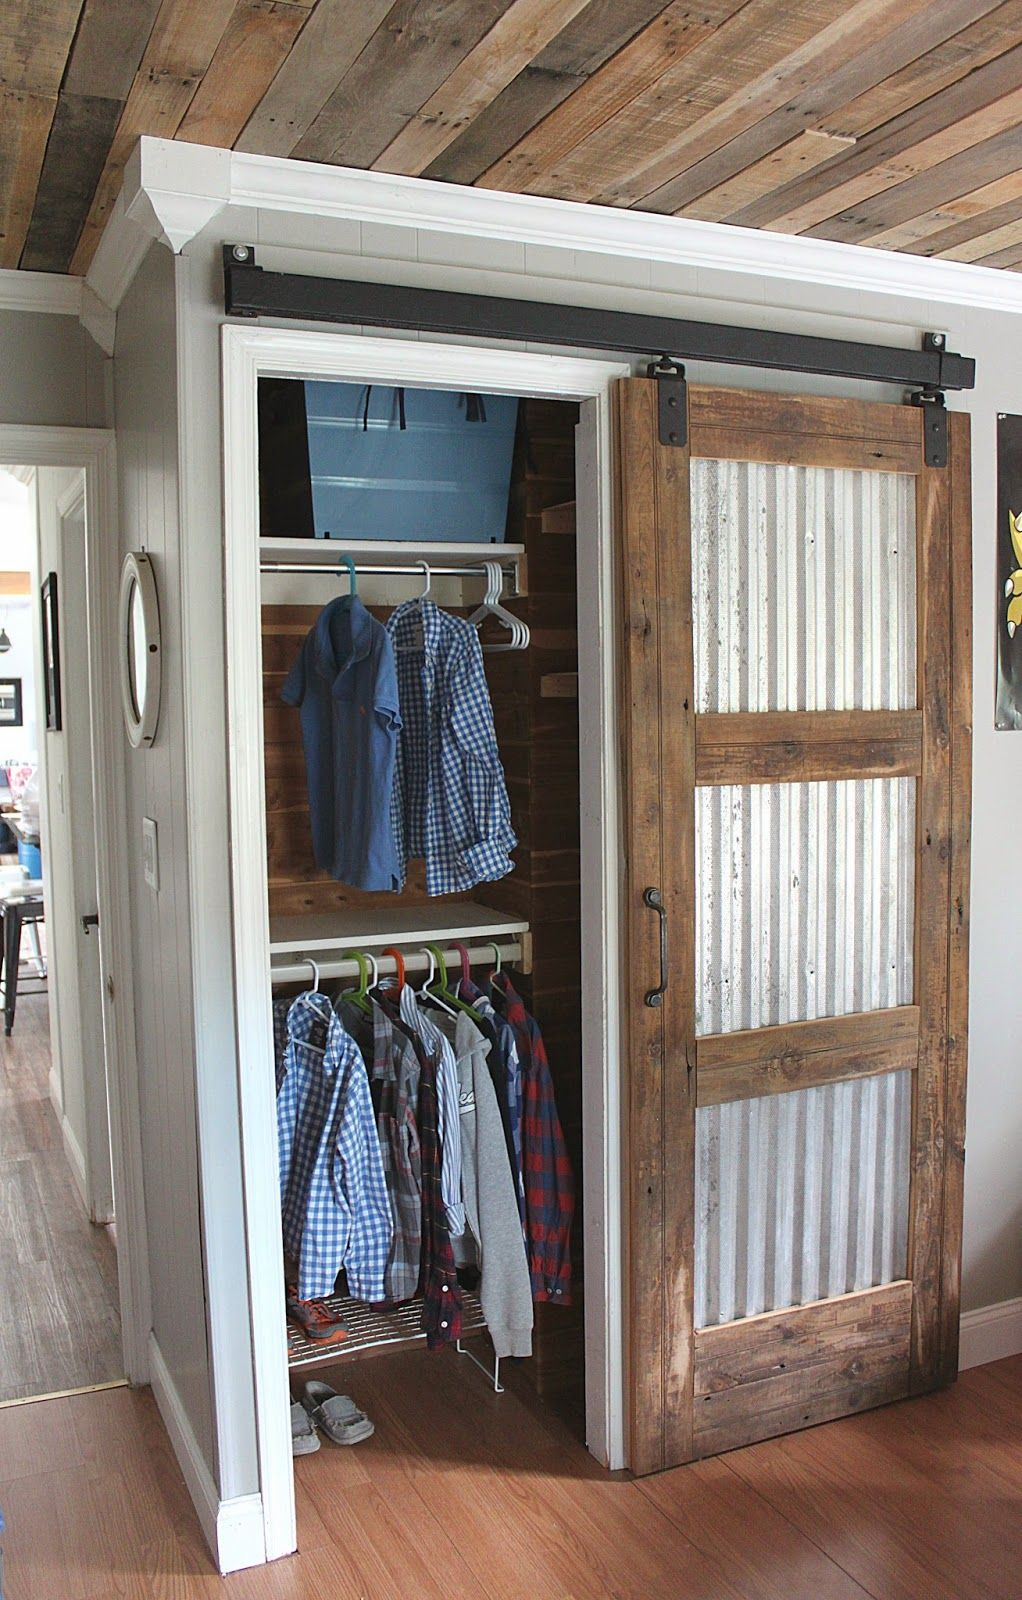 20 Diy Barn Door Tutorials Remodel Doors Closet Doors Barn